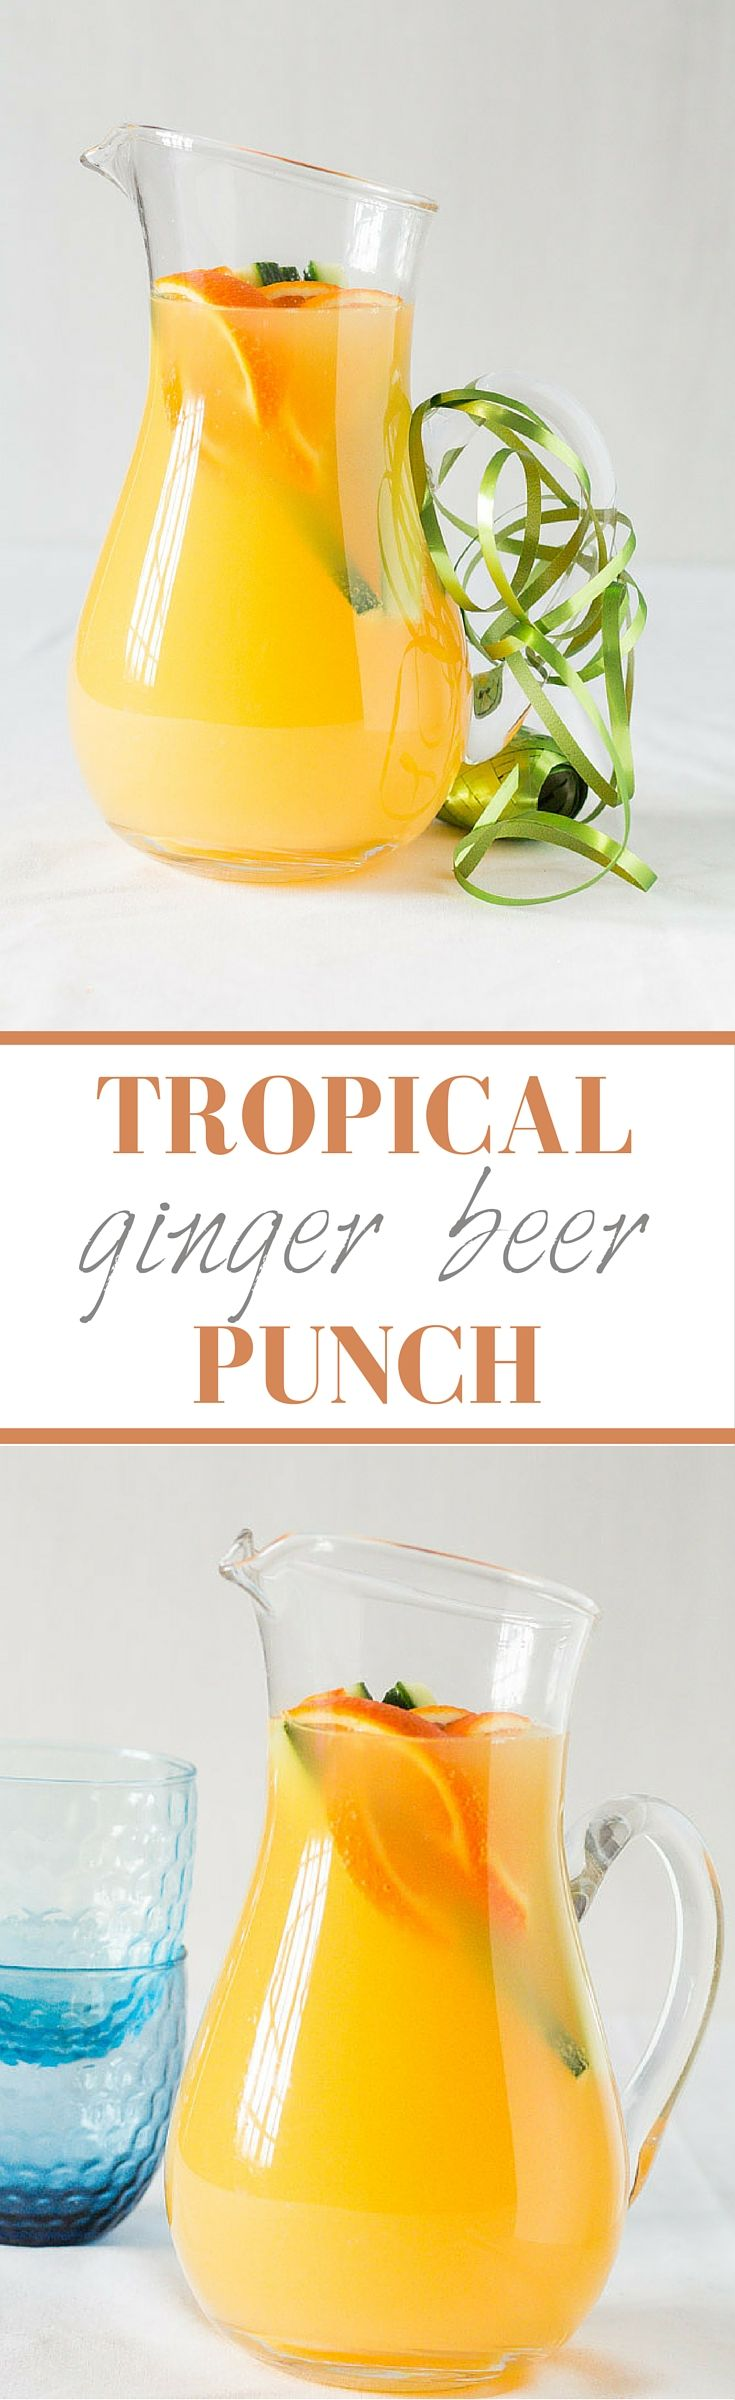 Tropical Ginger Beer Punch Recipe | Recipes From A Pantry